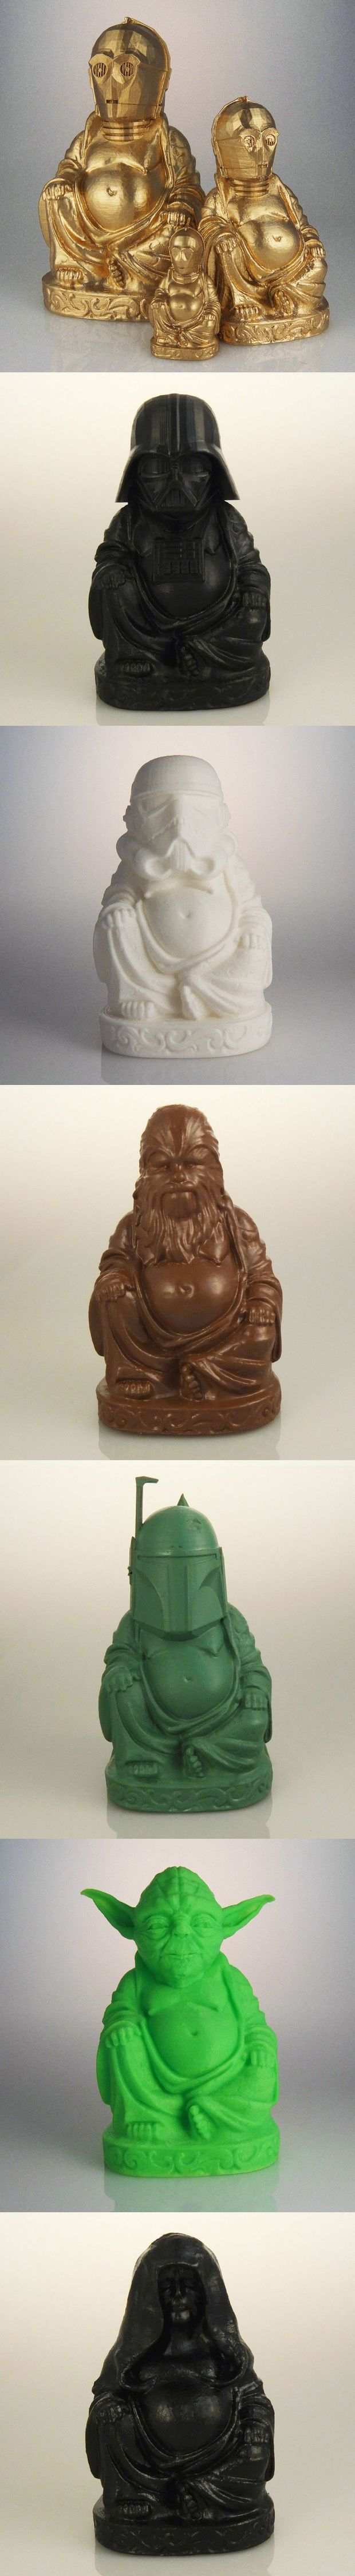 """3D Printed Geeky Laughing Buddhas: What is the Sound of One Han Shooting? Tap into the force of Luck with Chris """"muckychris"""" Milnes' 3D printed geeky Budai statues, which swaps the jelly bellied deity's head with characters from Star Wars"""